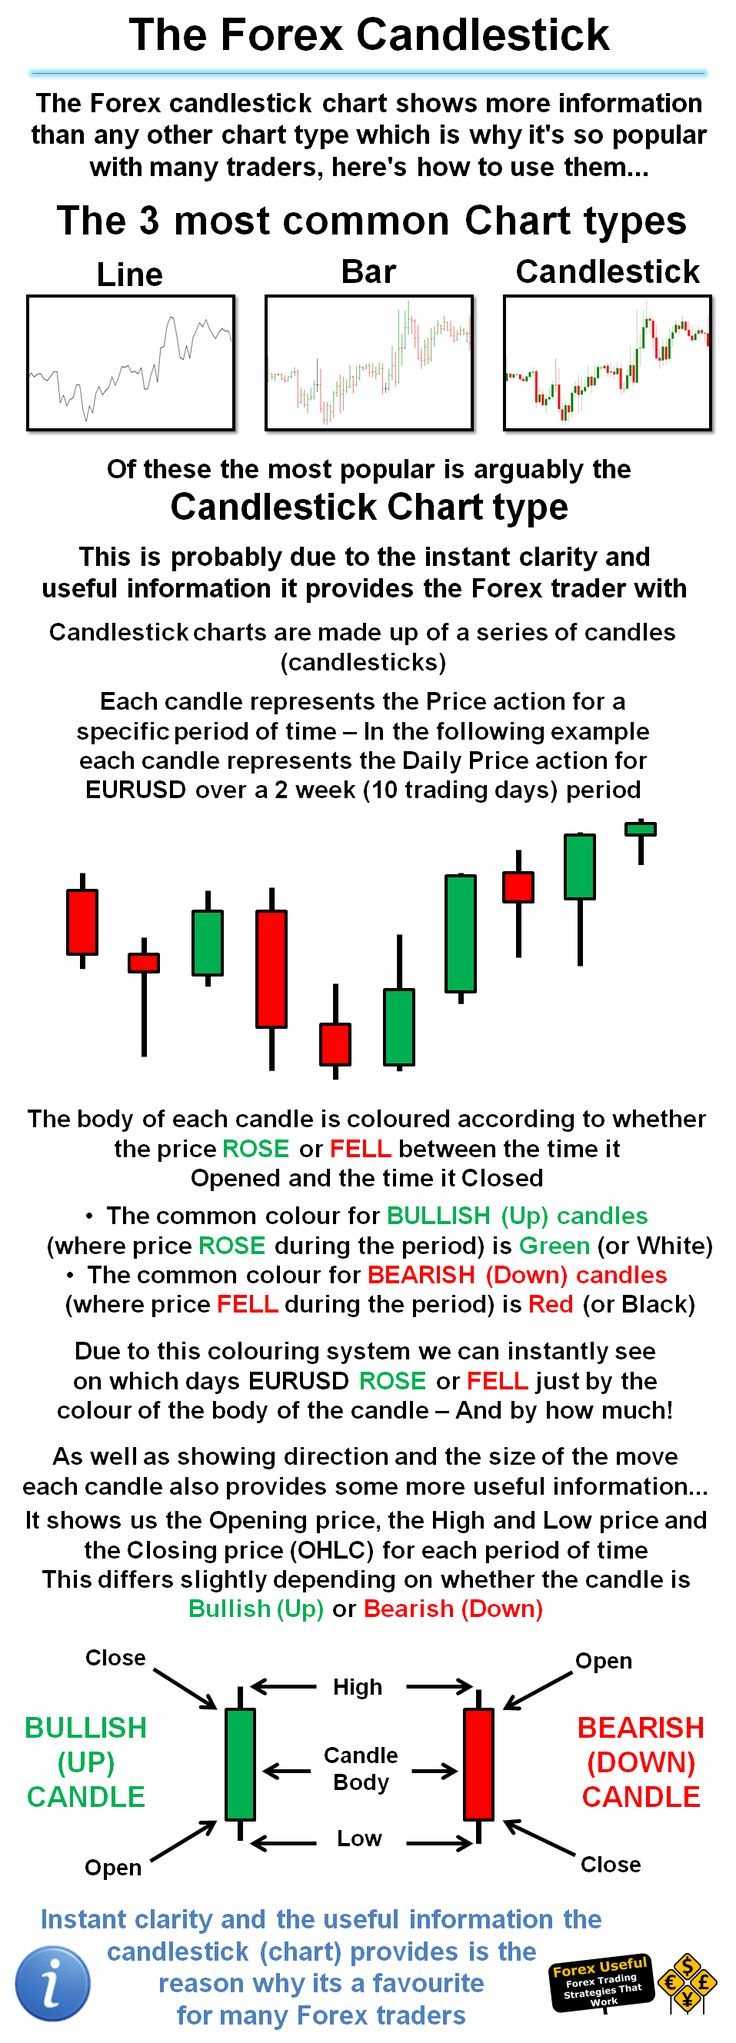 How to use candlesticks in forex trading